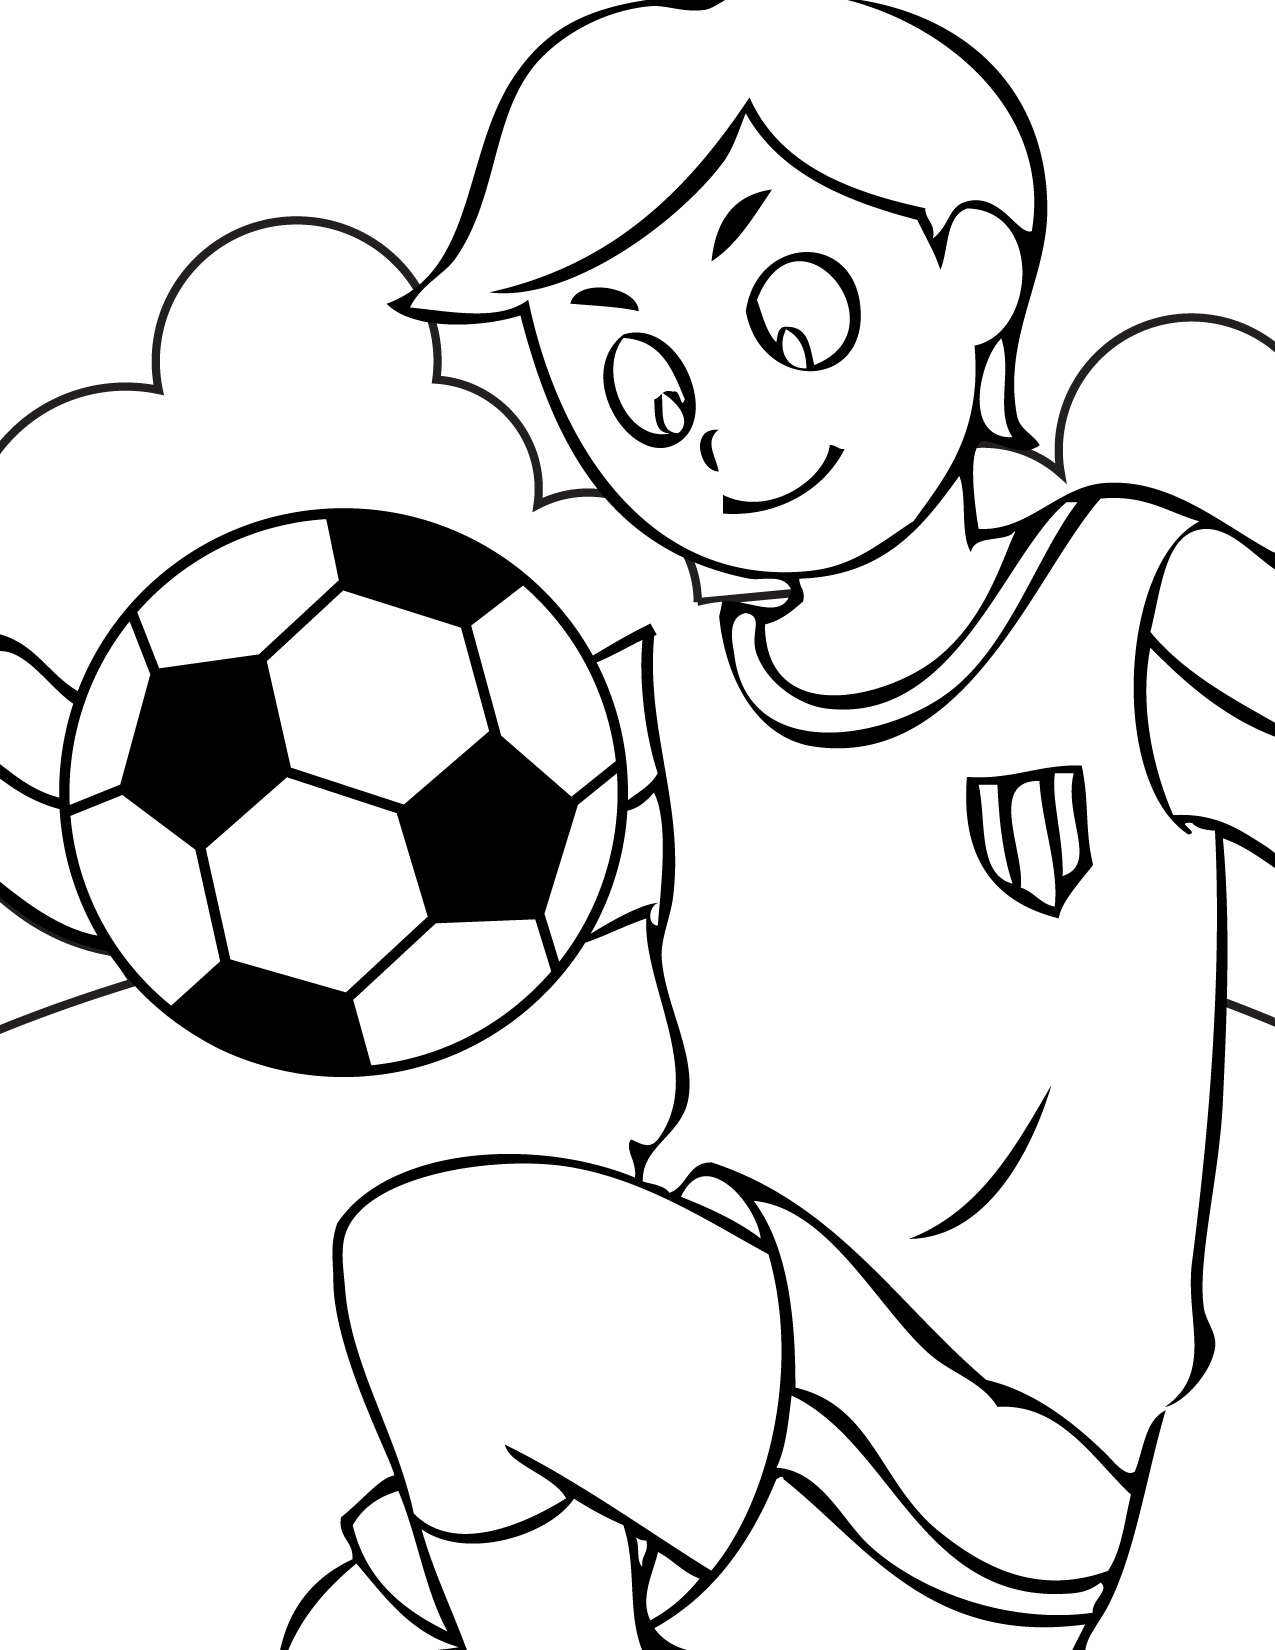 sports day colouring coloriage volley ball colouring day sports